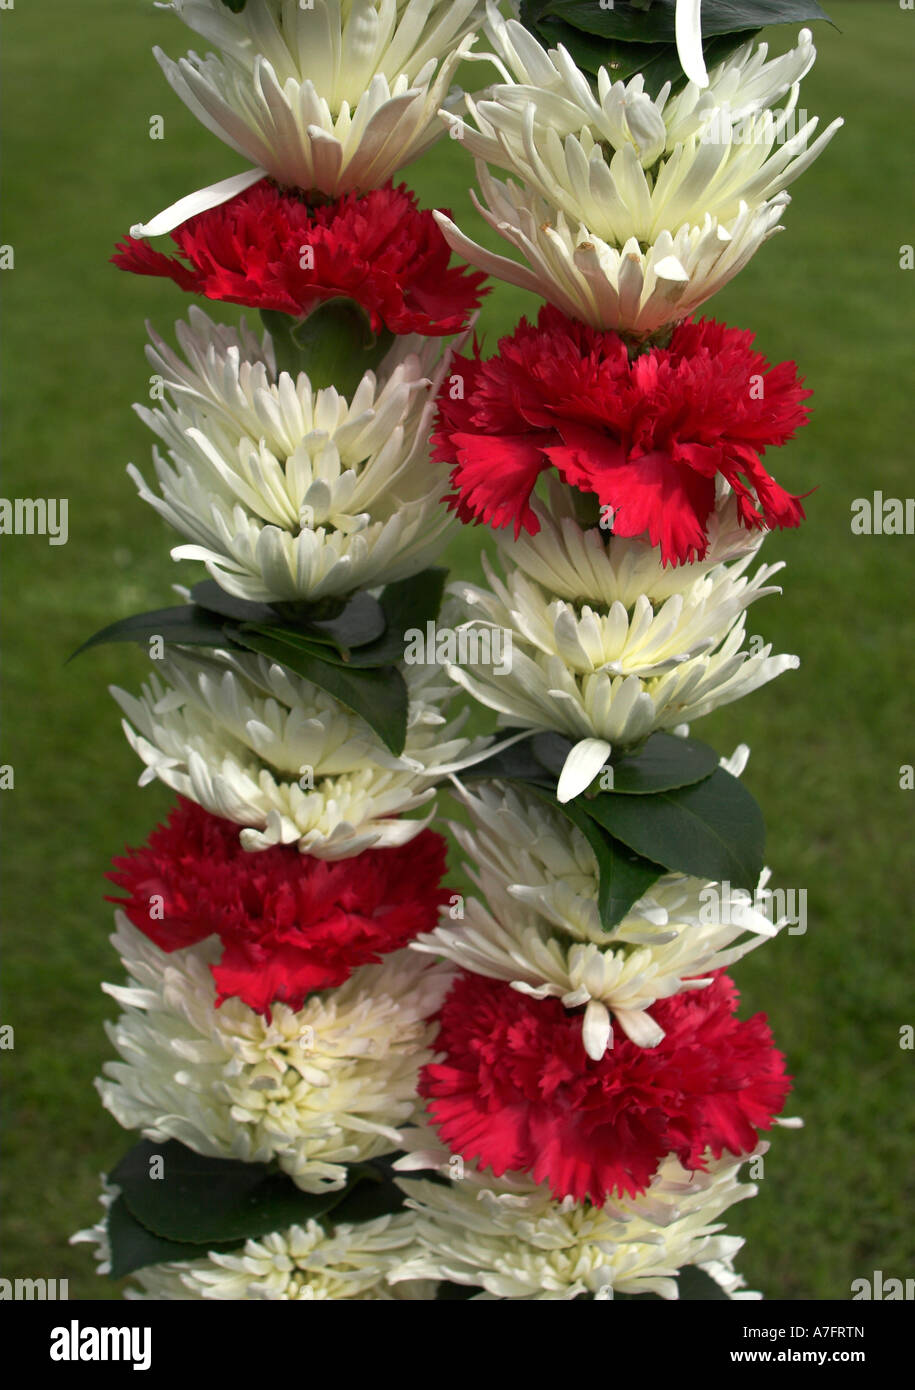 Indian Wedding Flower Garland High Resolution Stock Photography And Images Alamy